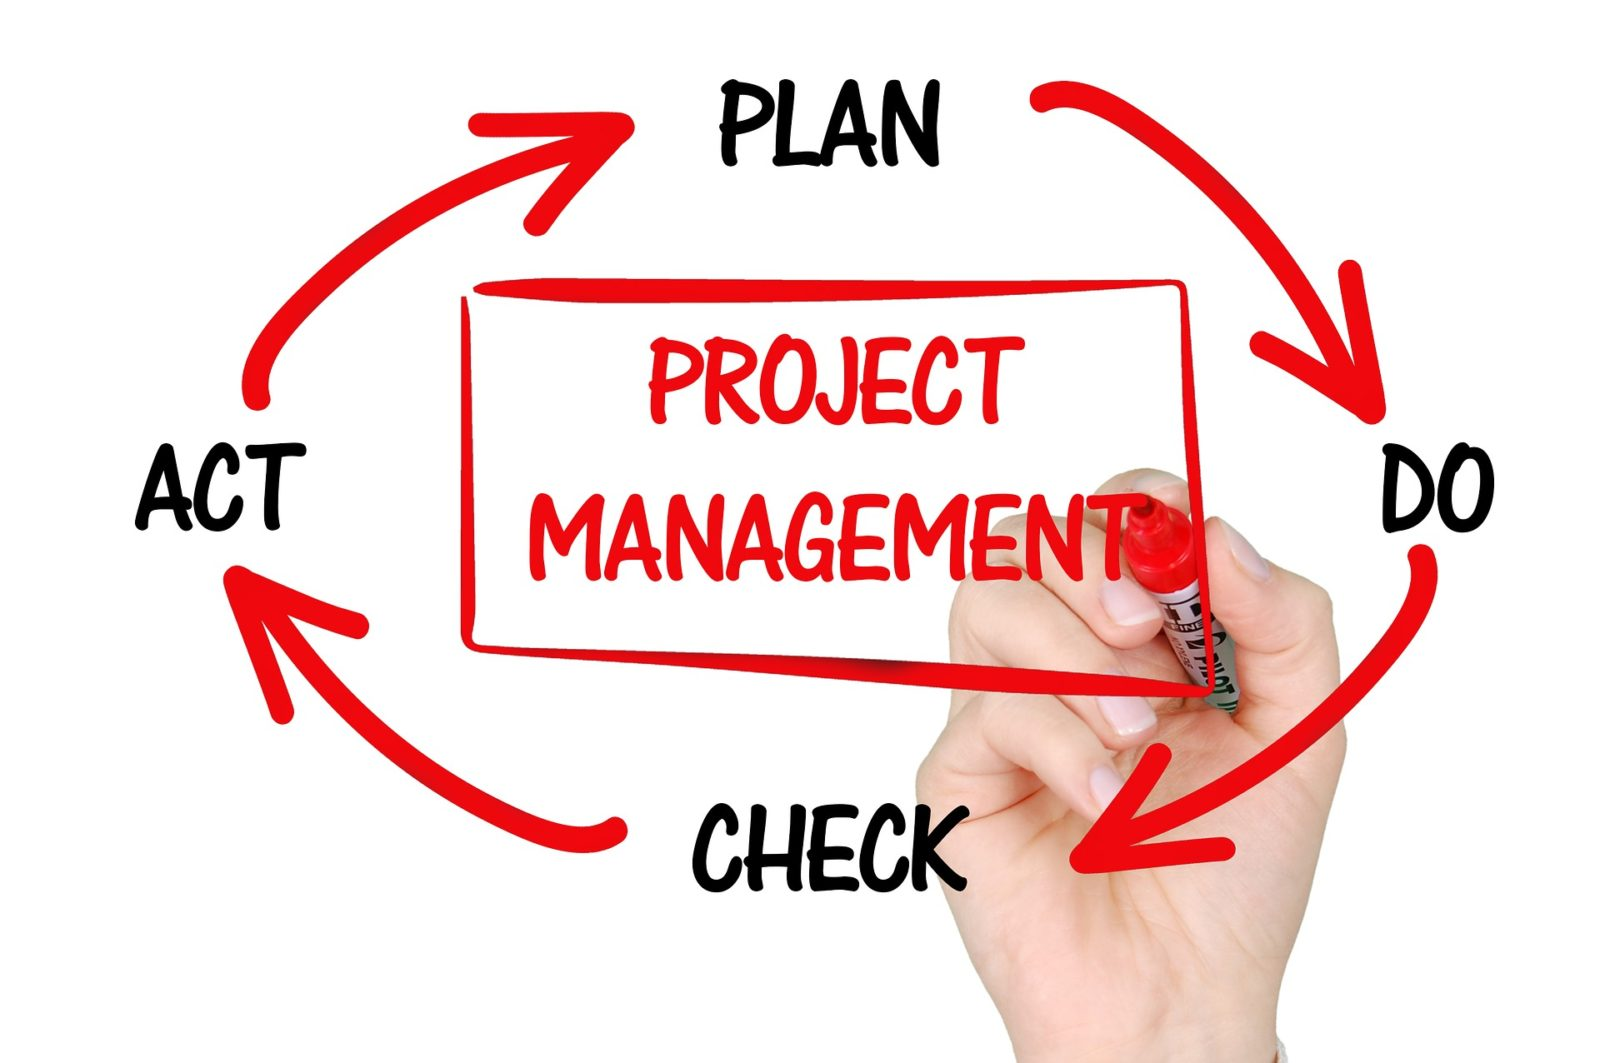 10 Great Leadership Skills For Project Management – Irish Tech News